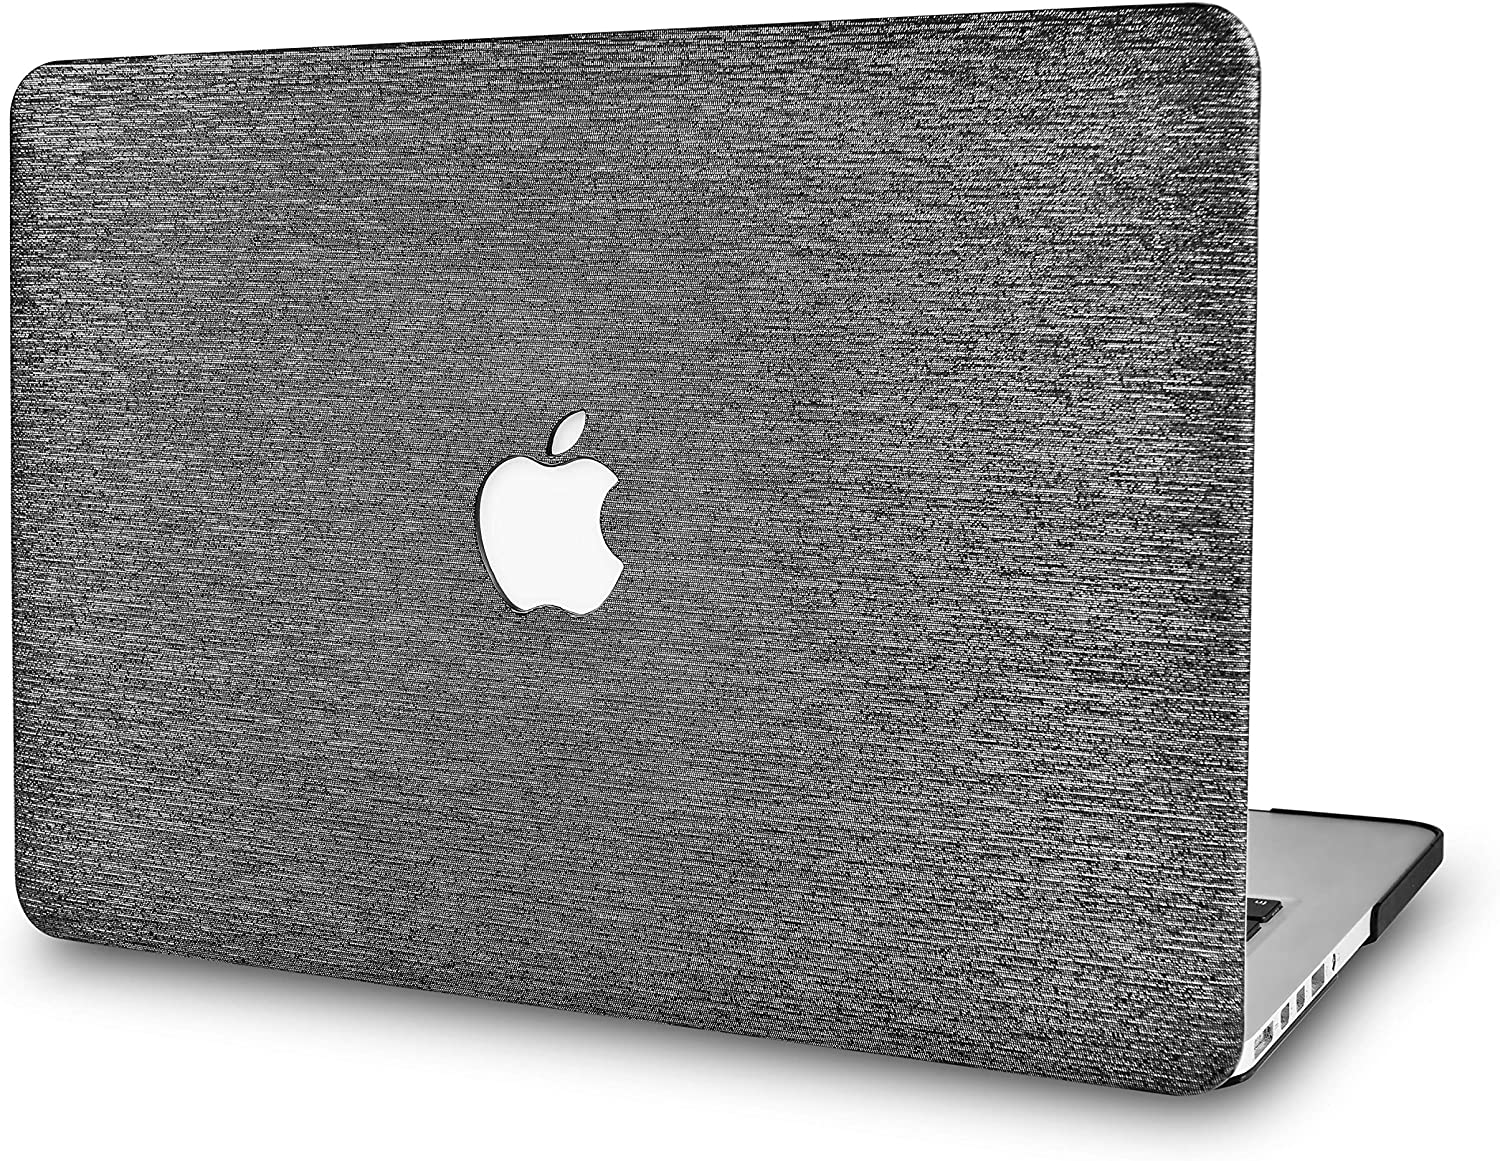 """LuvCaseLaptopCaseforOld MacBook Pro 13"""" Retina Display (2015/2014/2013/2012 Release) A1502/A1425LeatherHardShellCover (Silver Grey Leather)"""